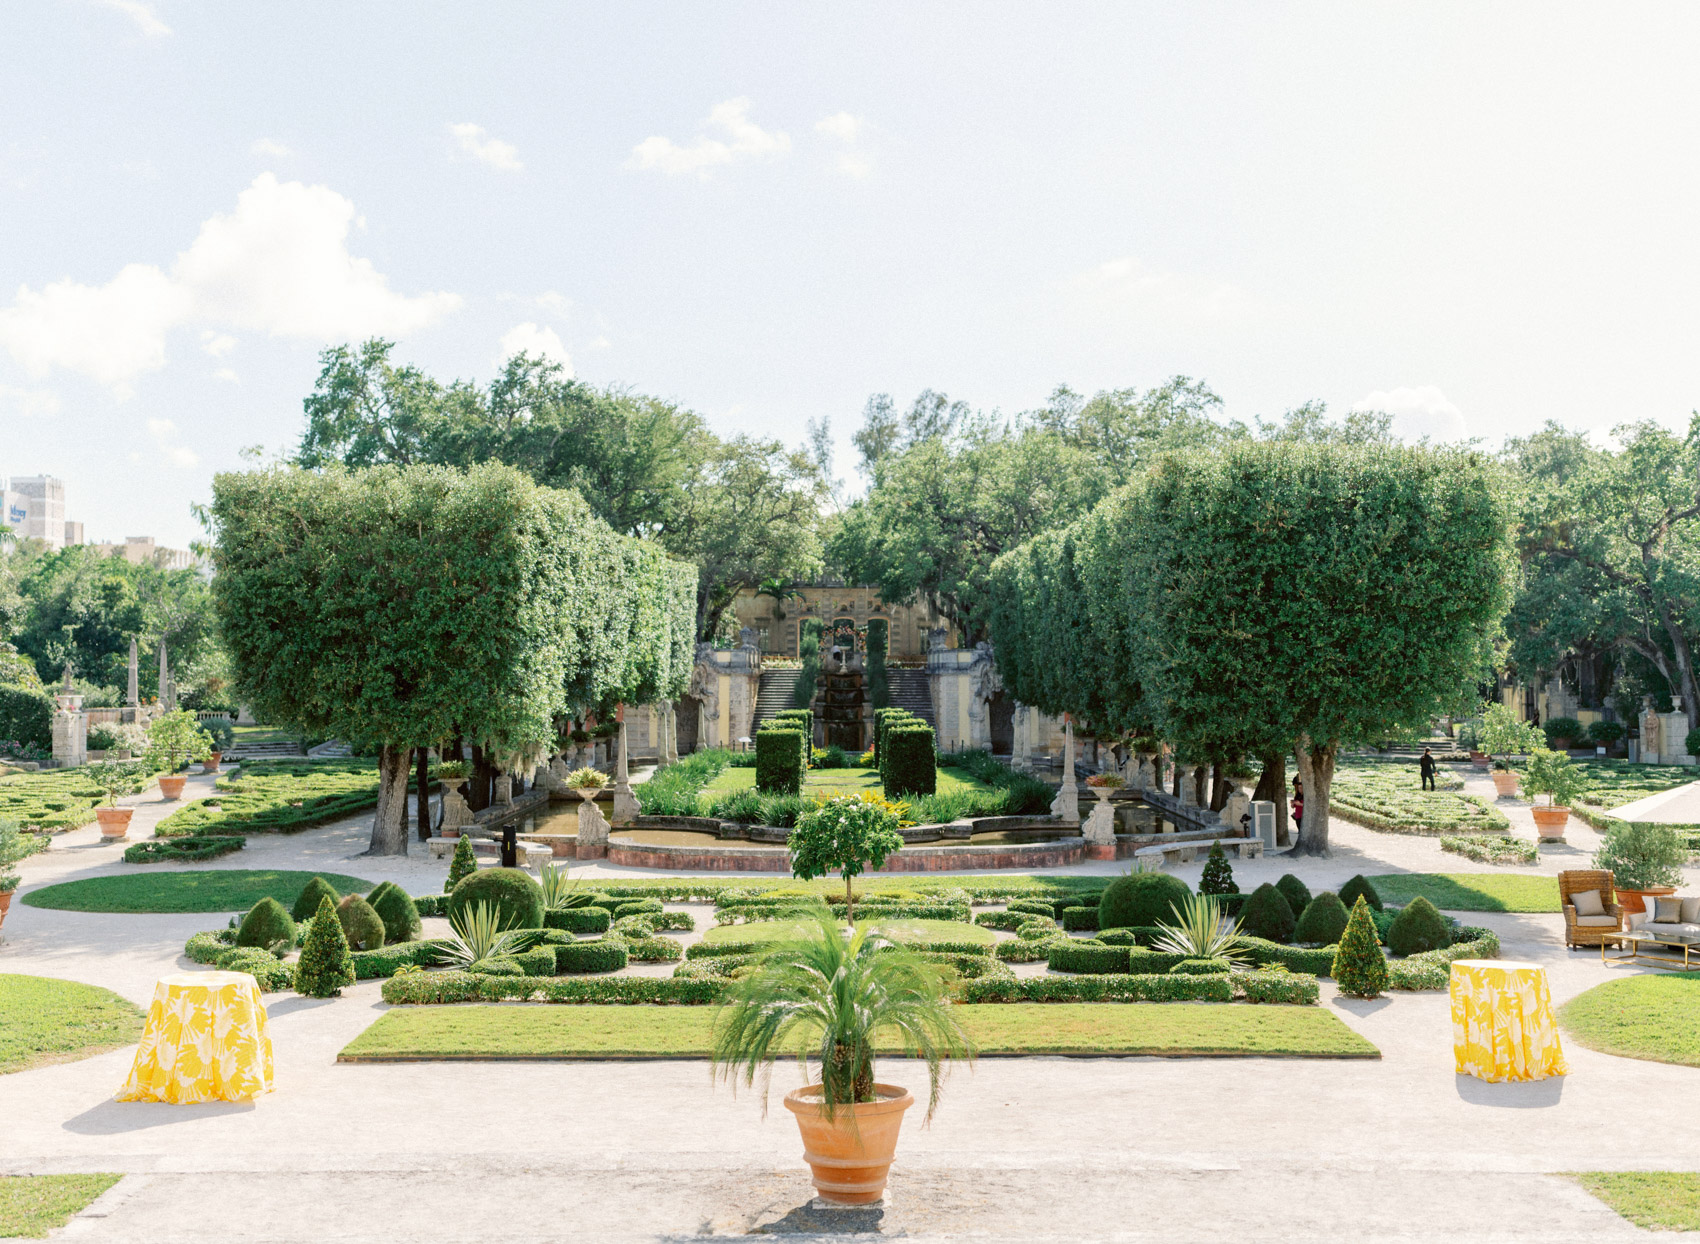 outdoor garden venue with topiary and hedging